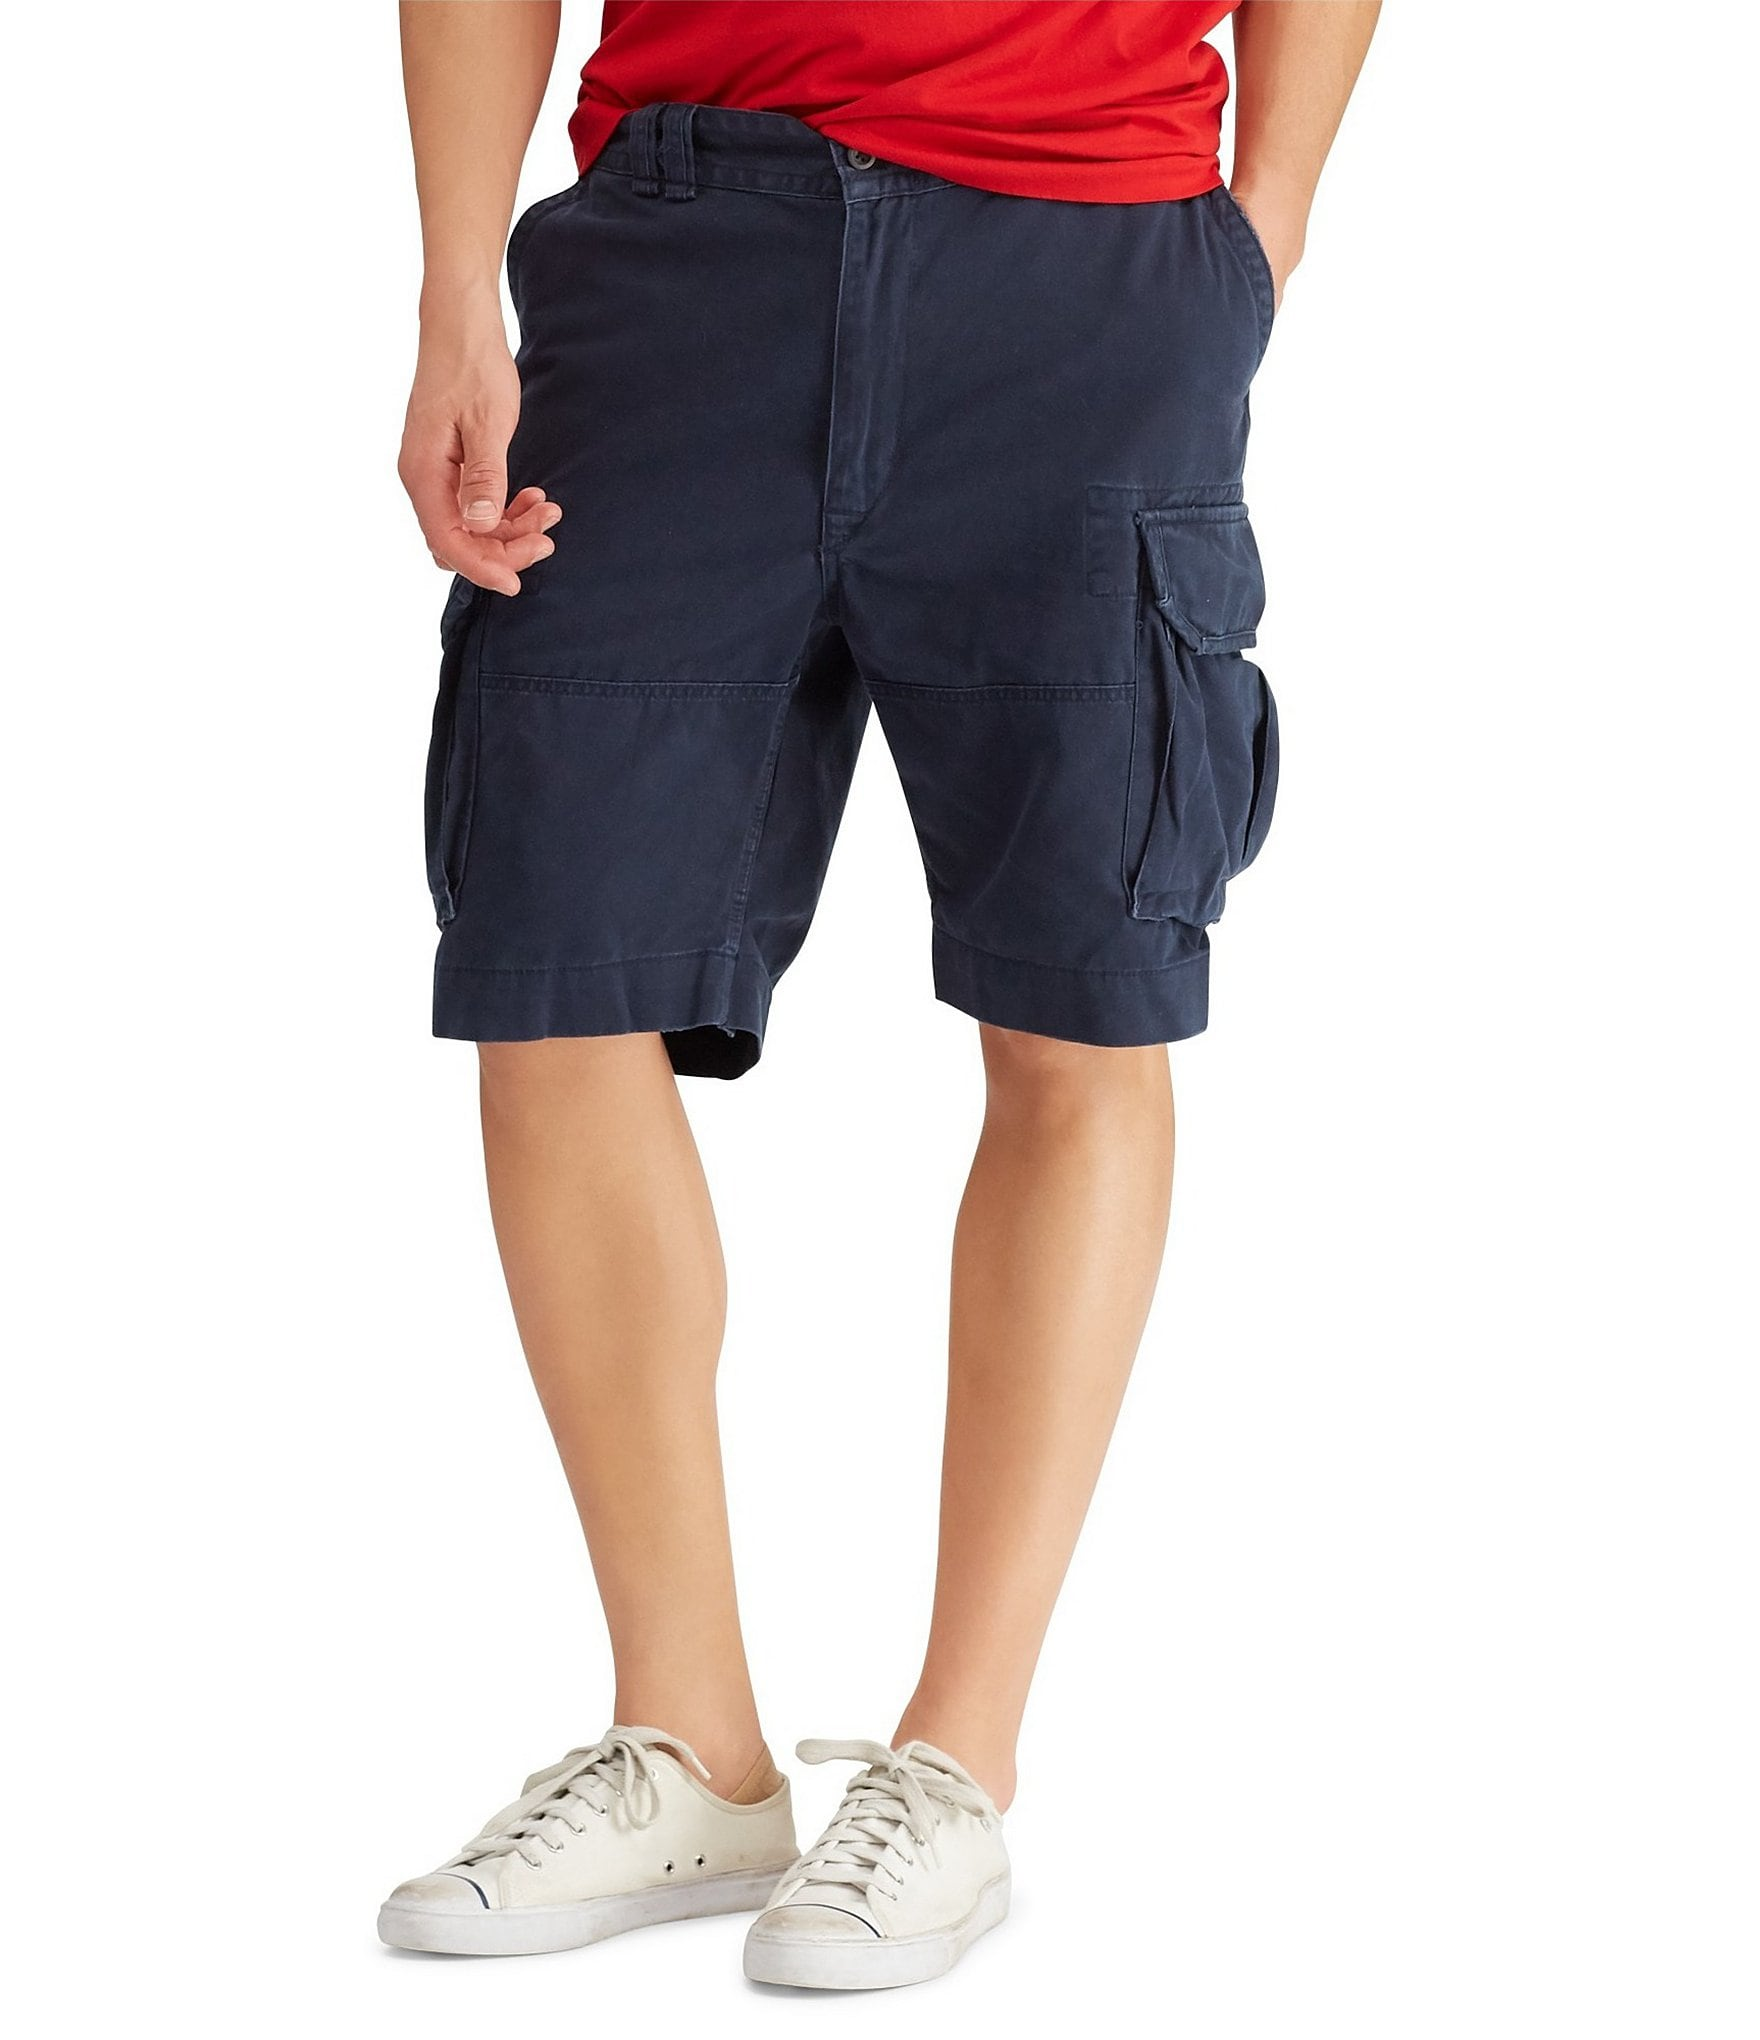 polo sperrys mens dress shorts